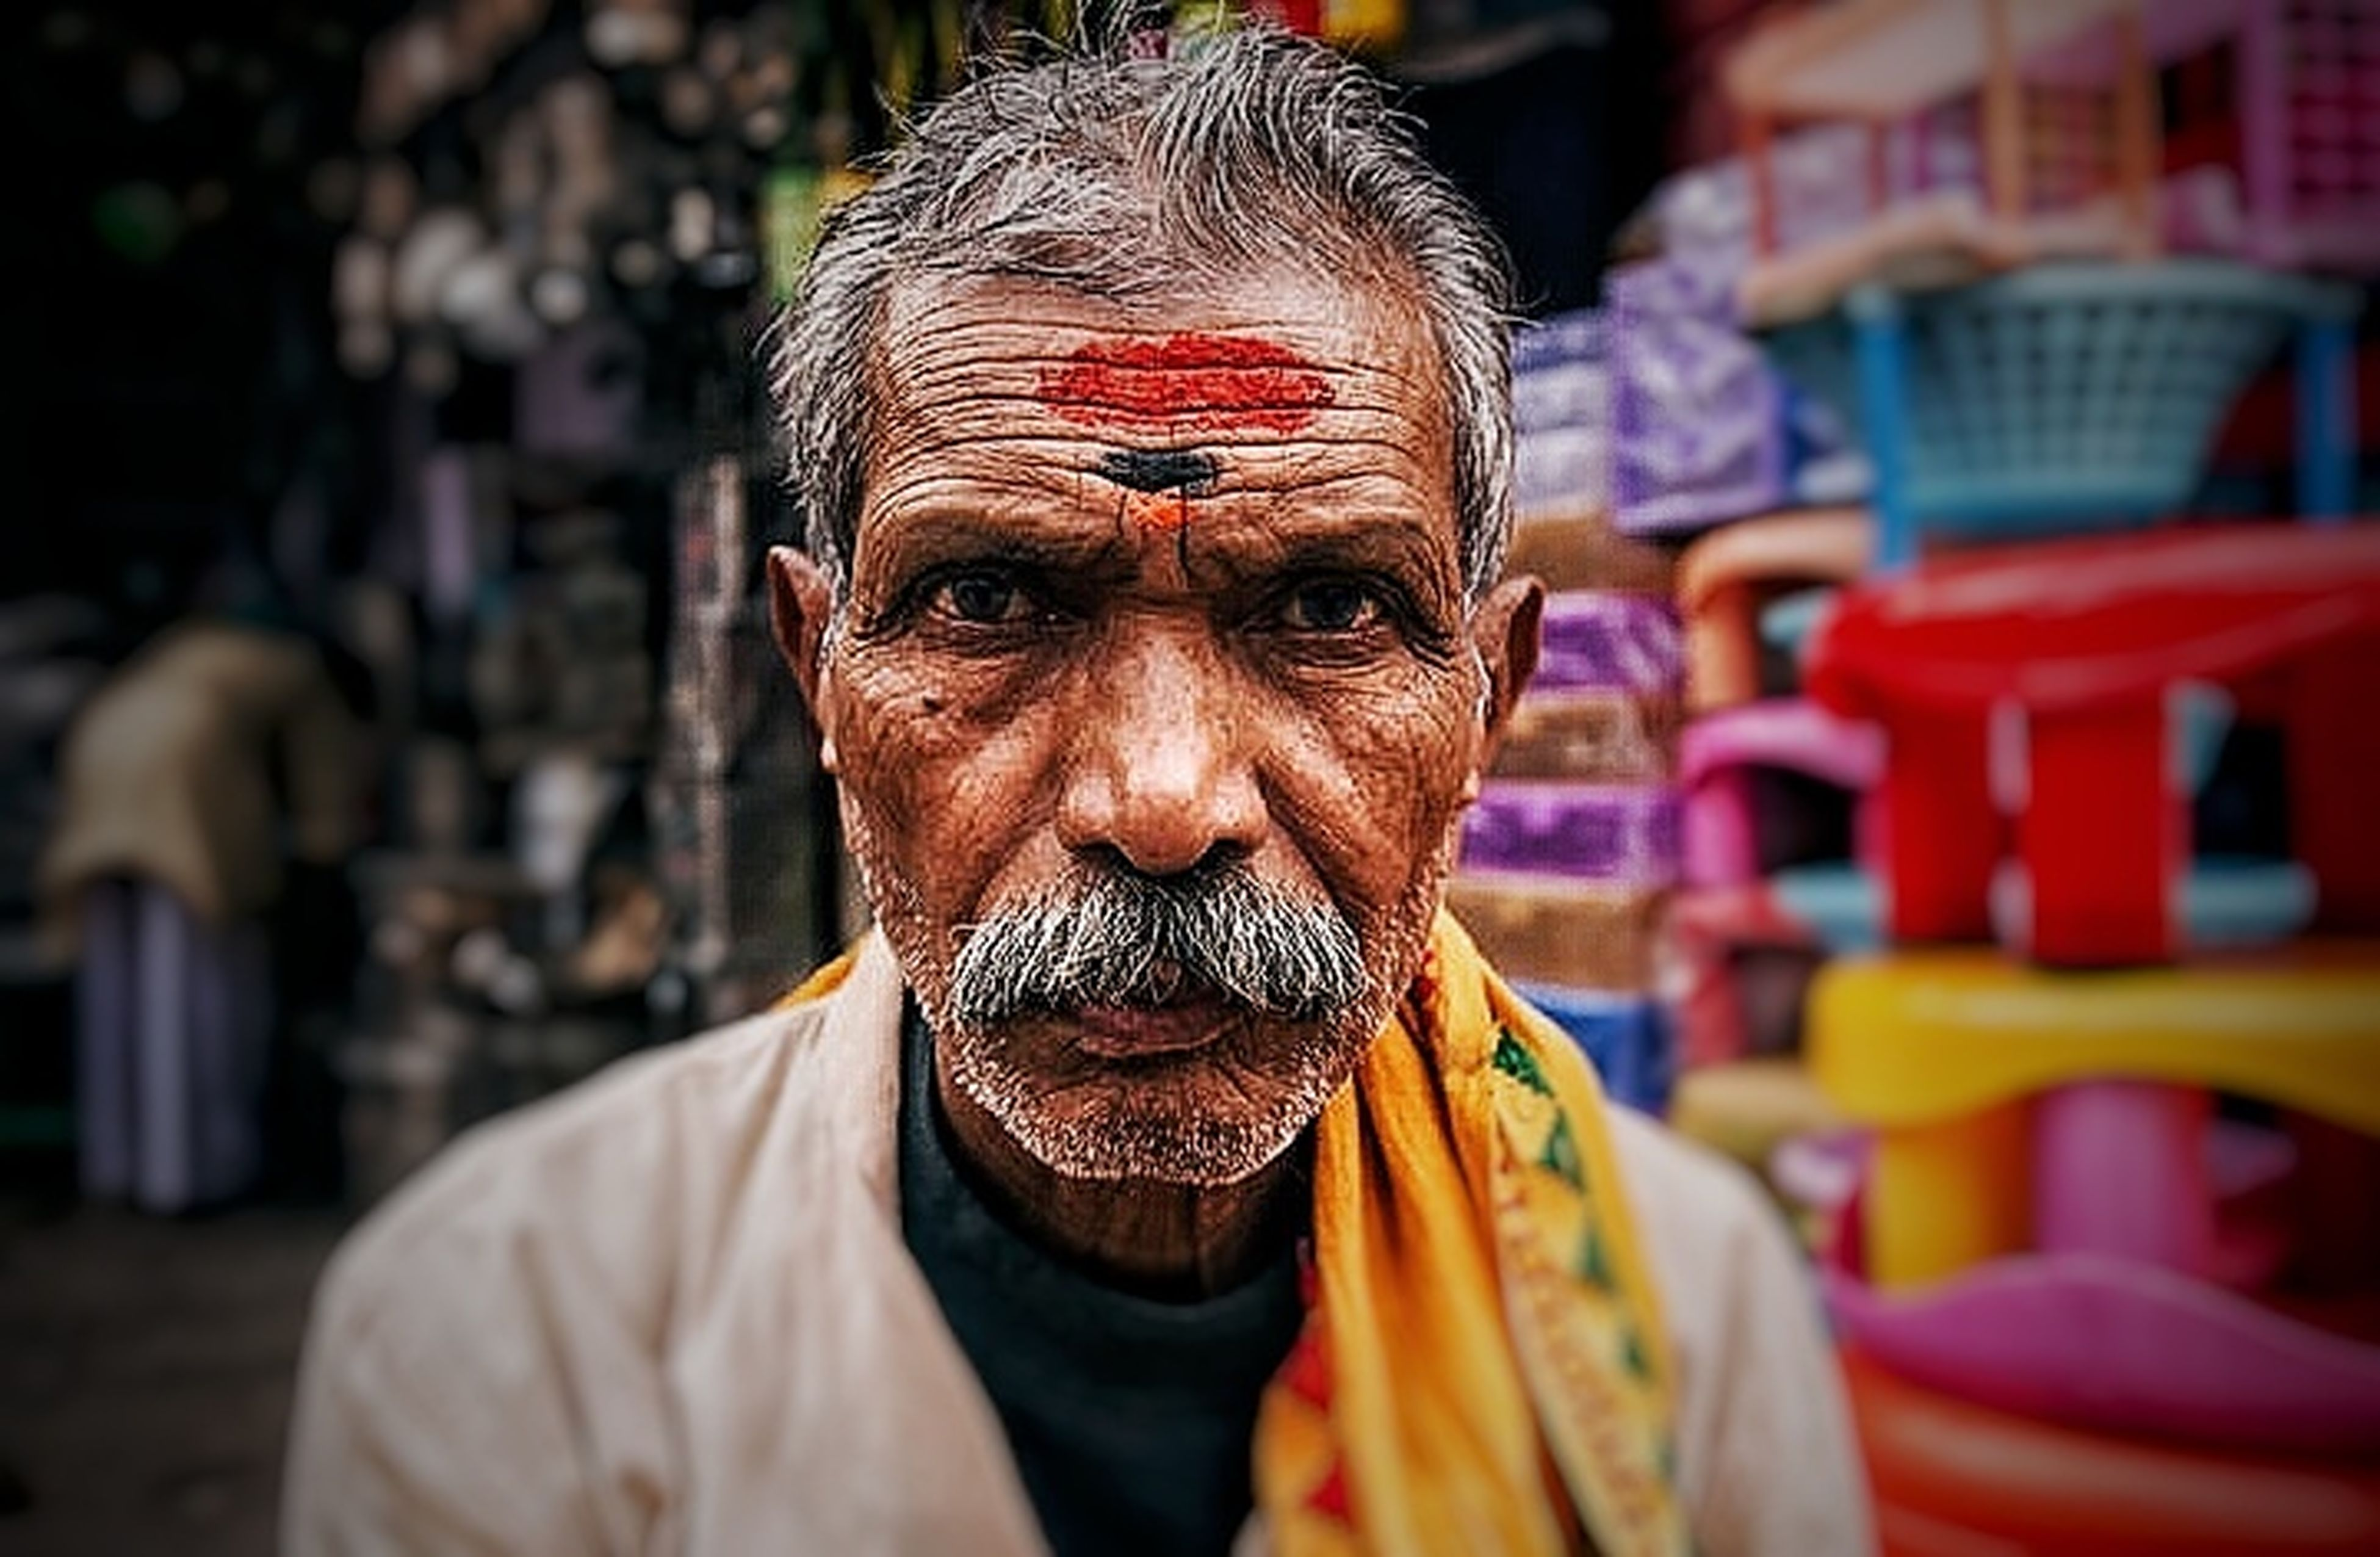 portrait, looking at camera, only men, adults only, one man only, one person, senior adult, beard, men, lifestyles, real people, human face, adult, facial hair, cultures, religion, people, holiday - event, close-up, outdoors, senior men, human body part, day